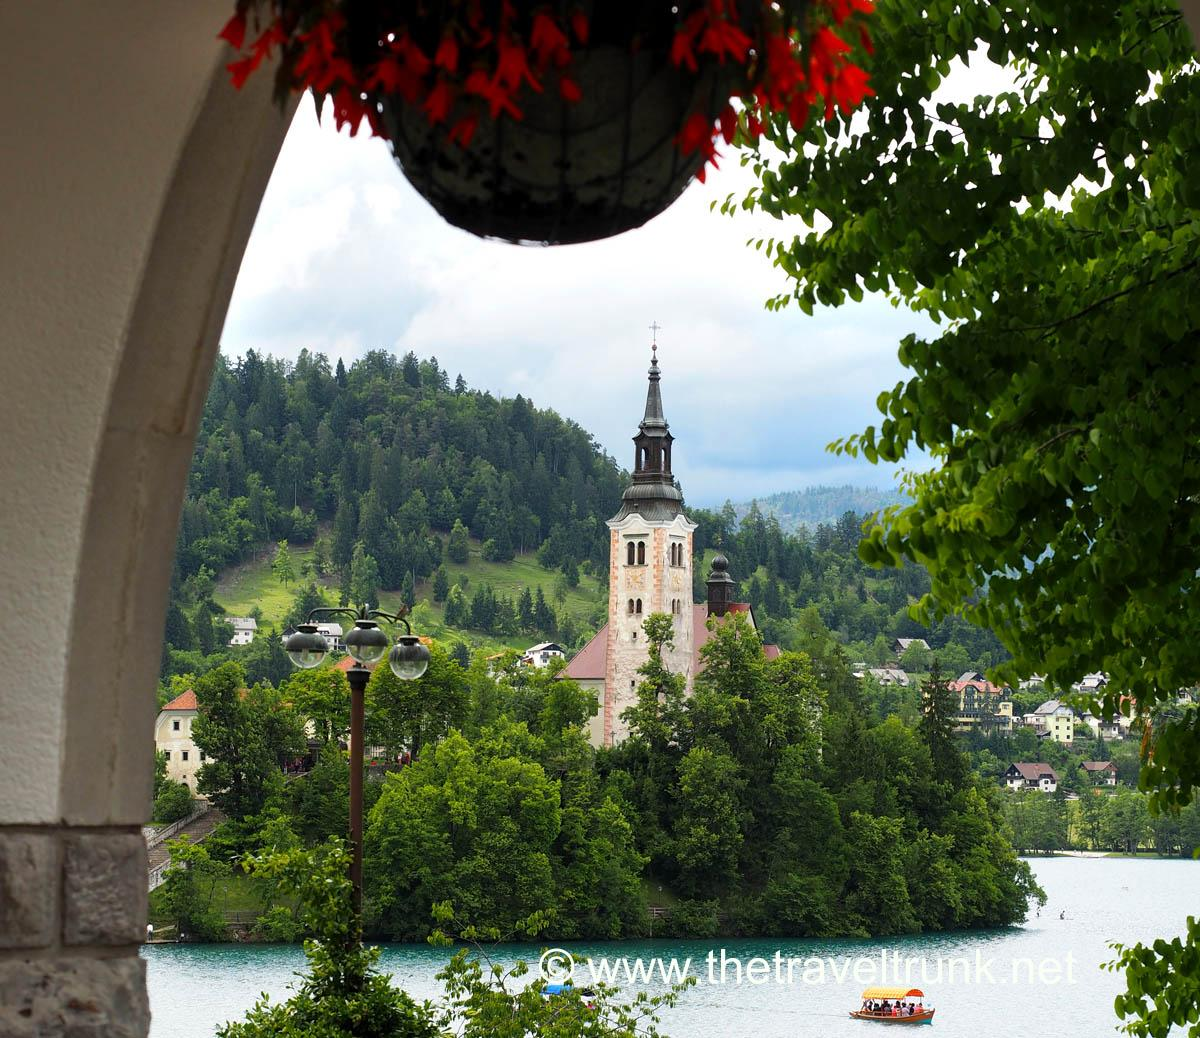 The island and Church of the Assumption of Maria in the middle of Lake Bled as viewed from the former residence of President Tito.